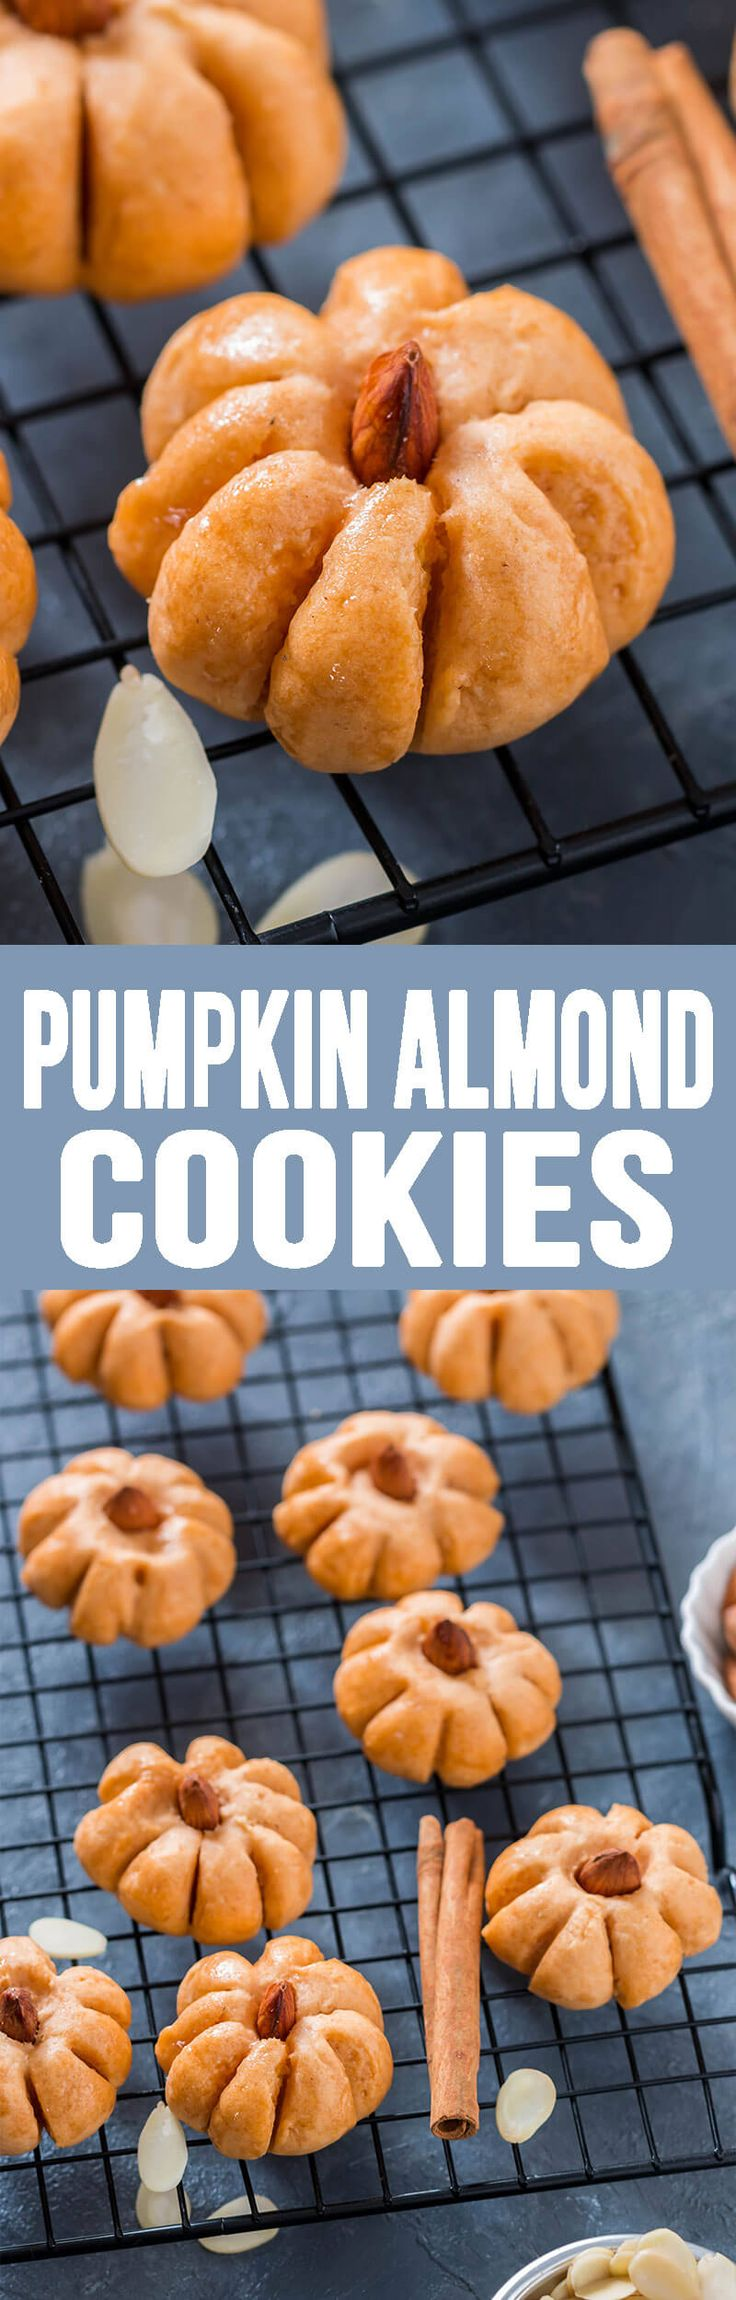 Pumpkin Almond Cookies not only are they adorable, but delicious too!